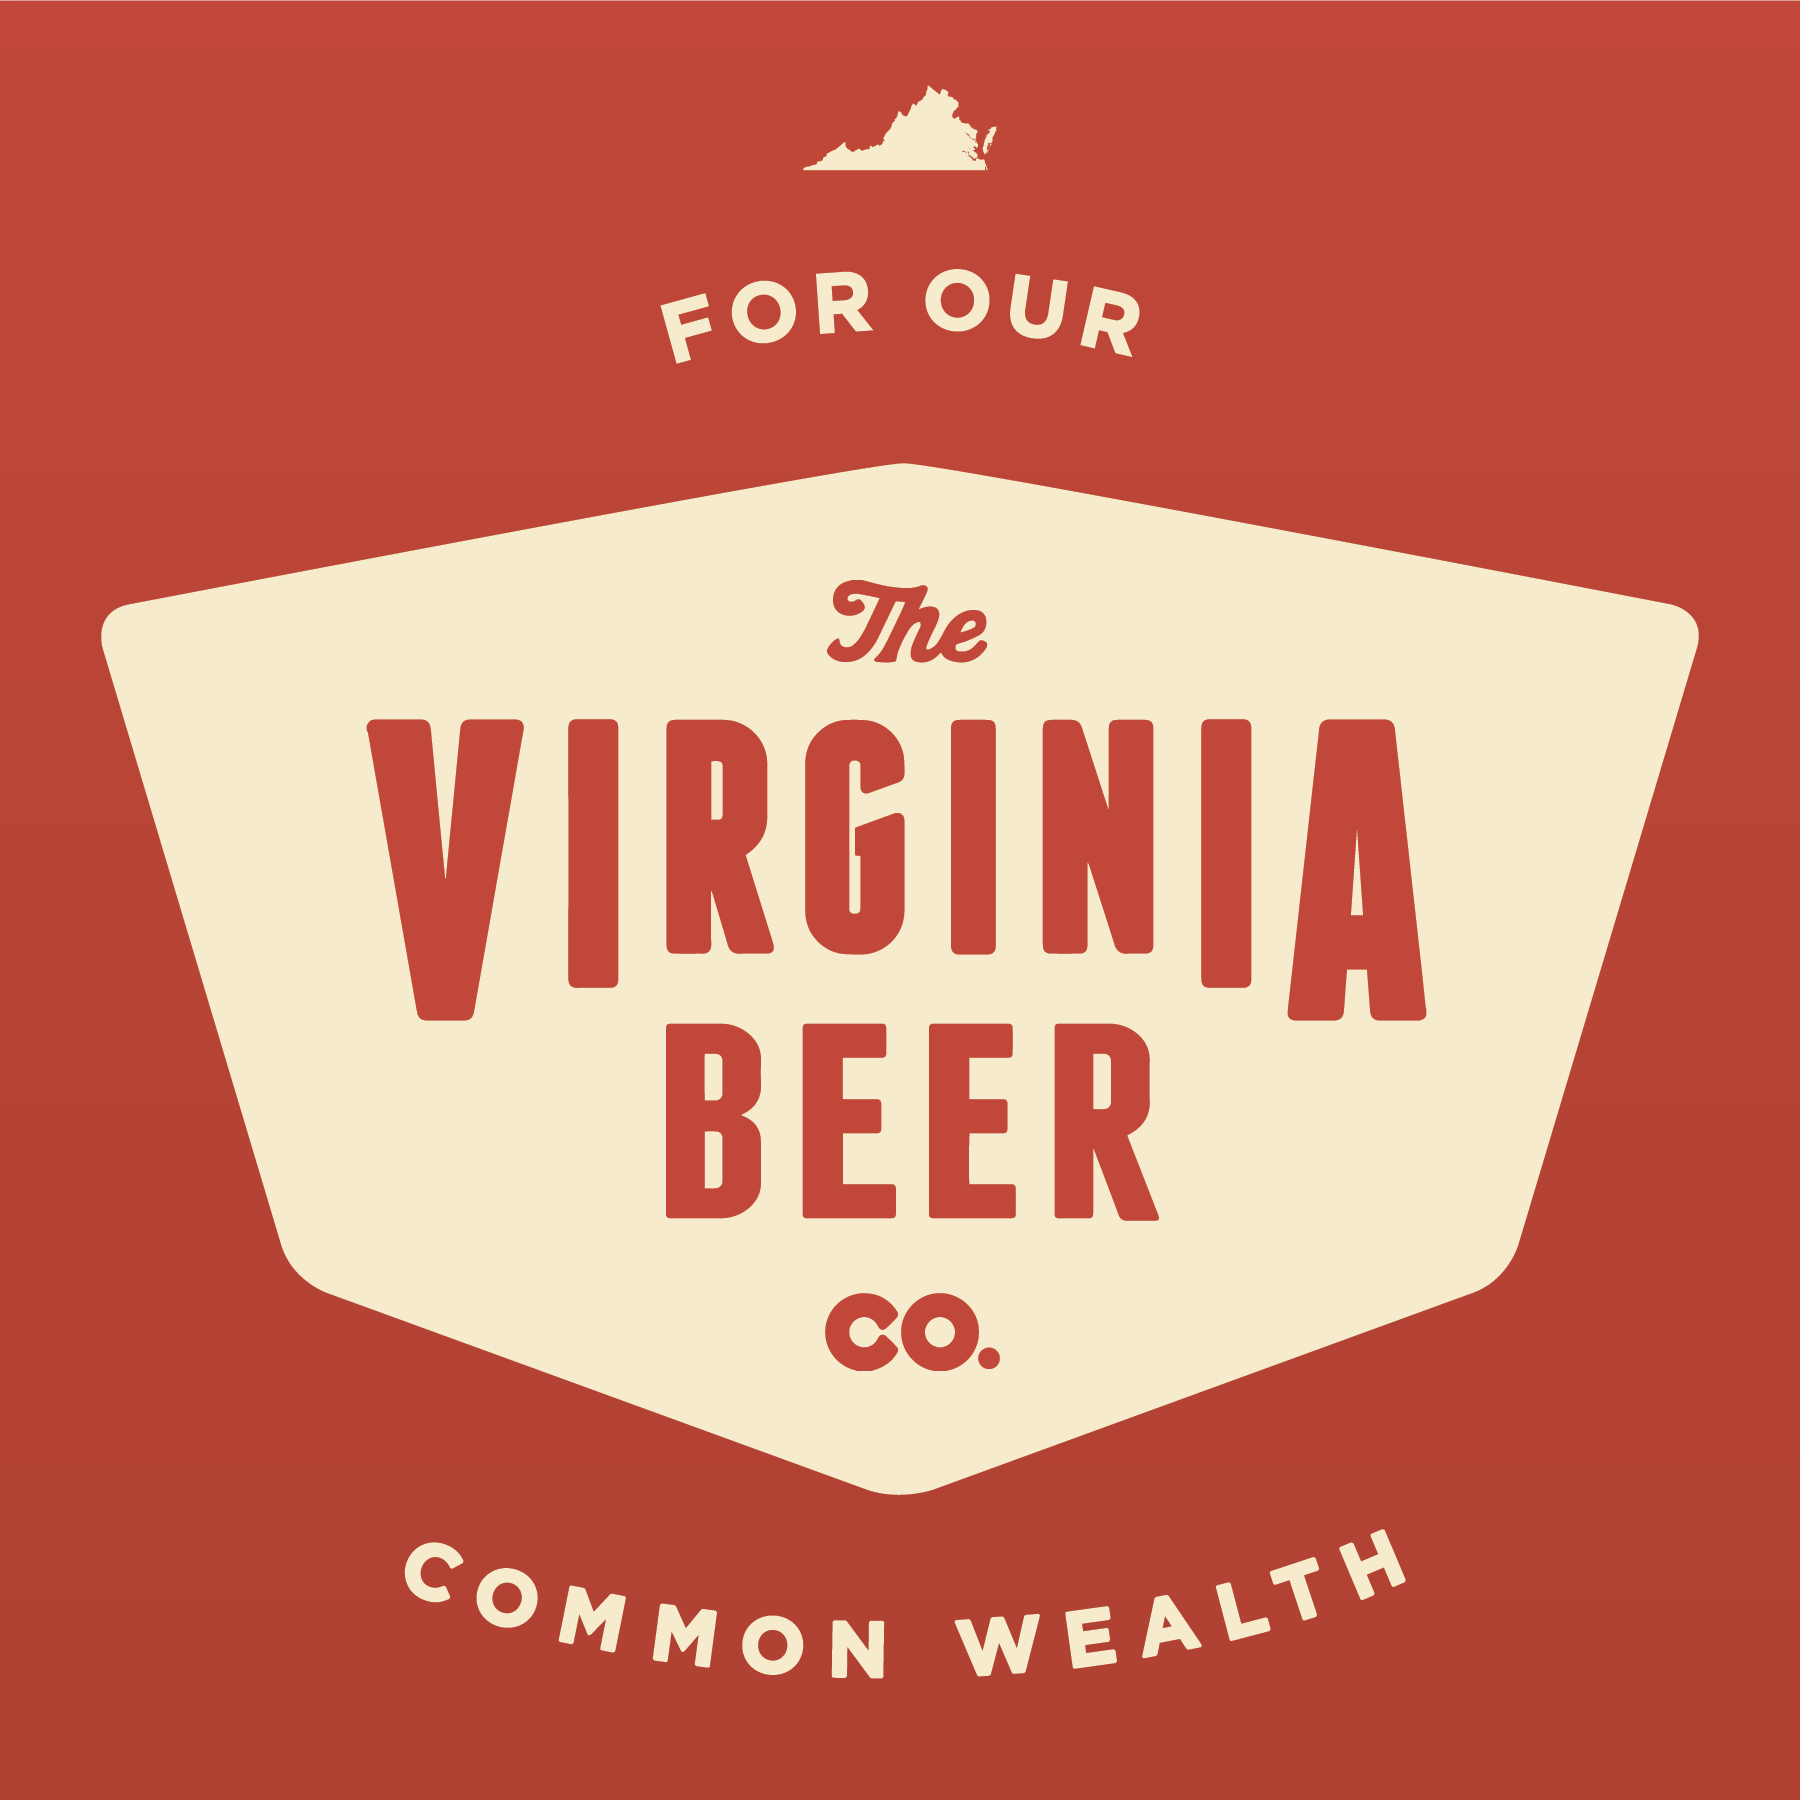 We look forward to us all raising a glass of Burg Beer together at 401 for our common wealth!